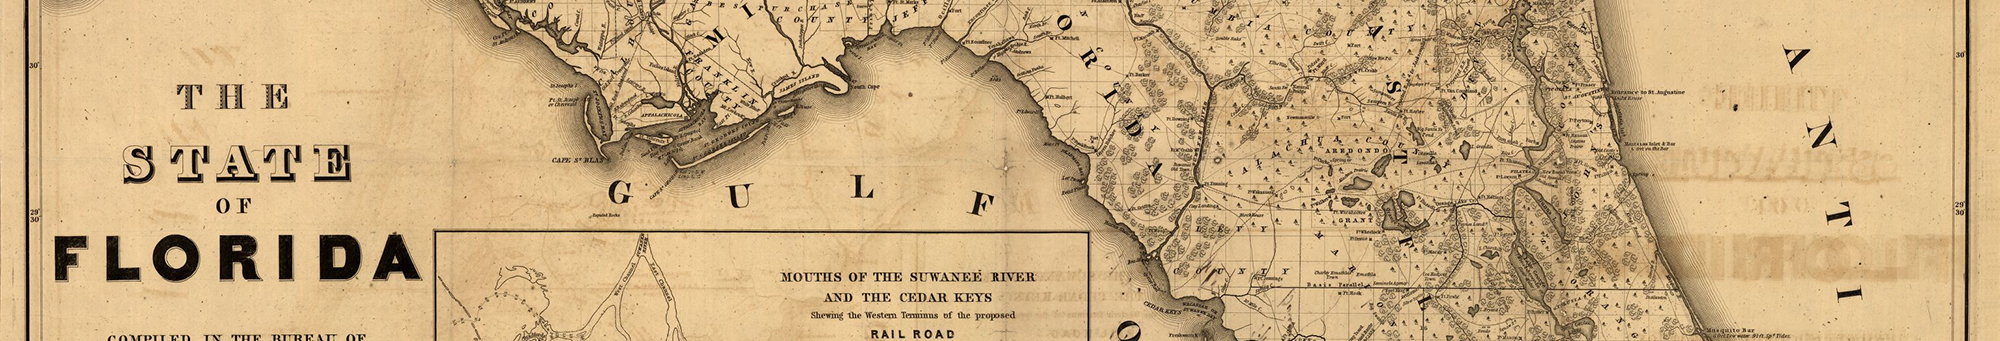 Banner -historic map of Florida, showing a slice of the N part of the state